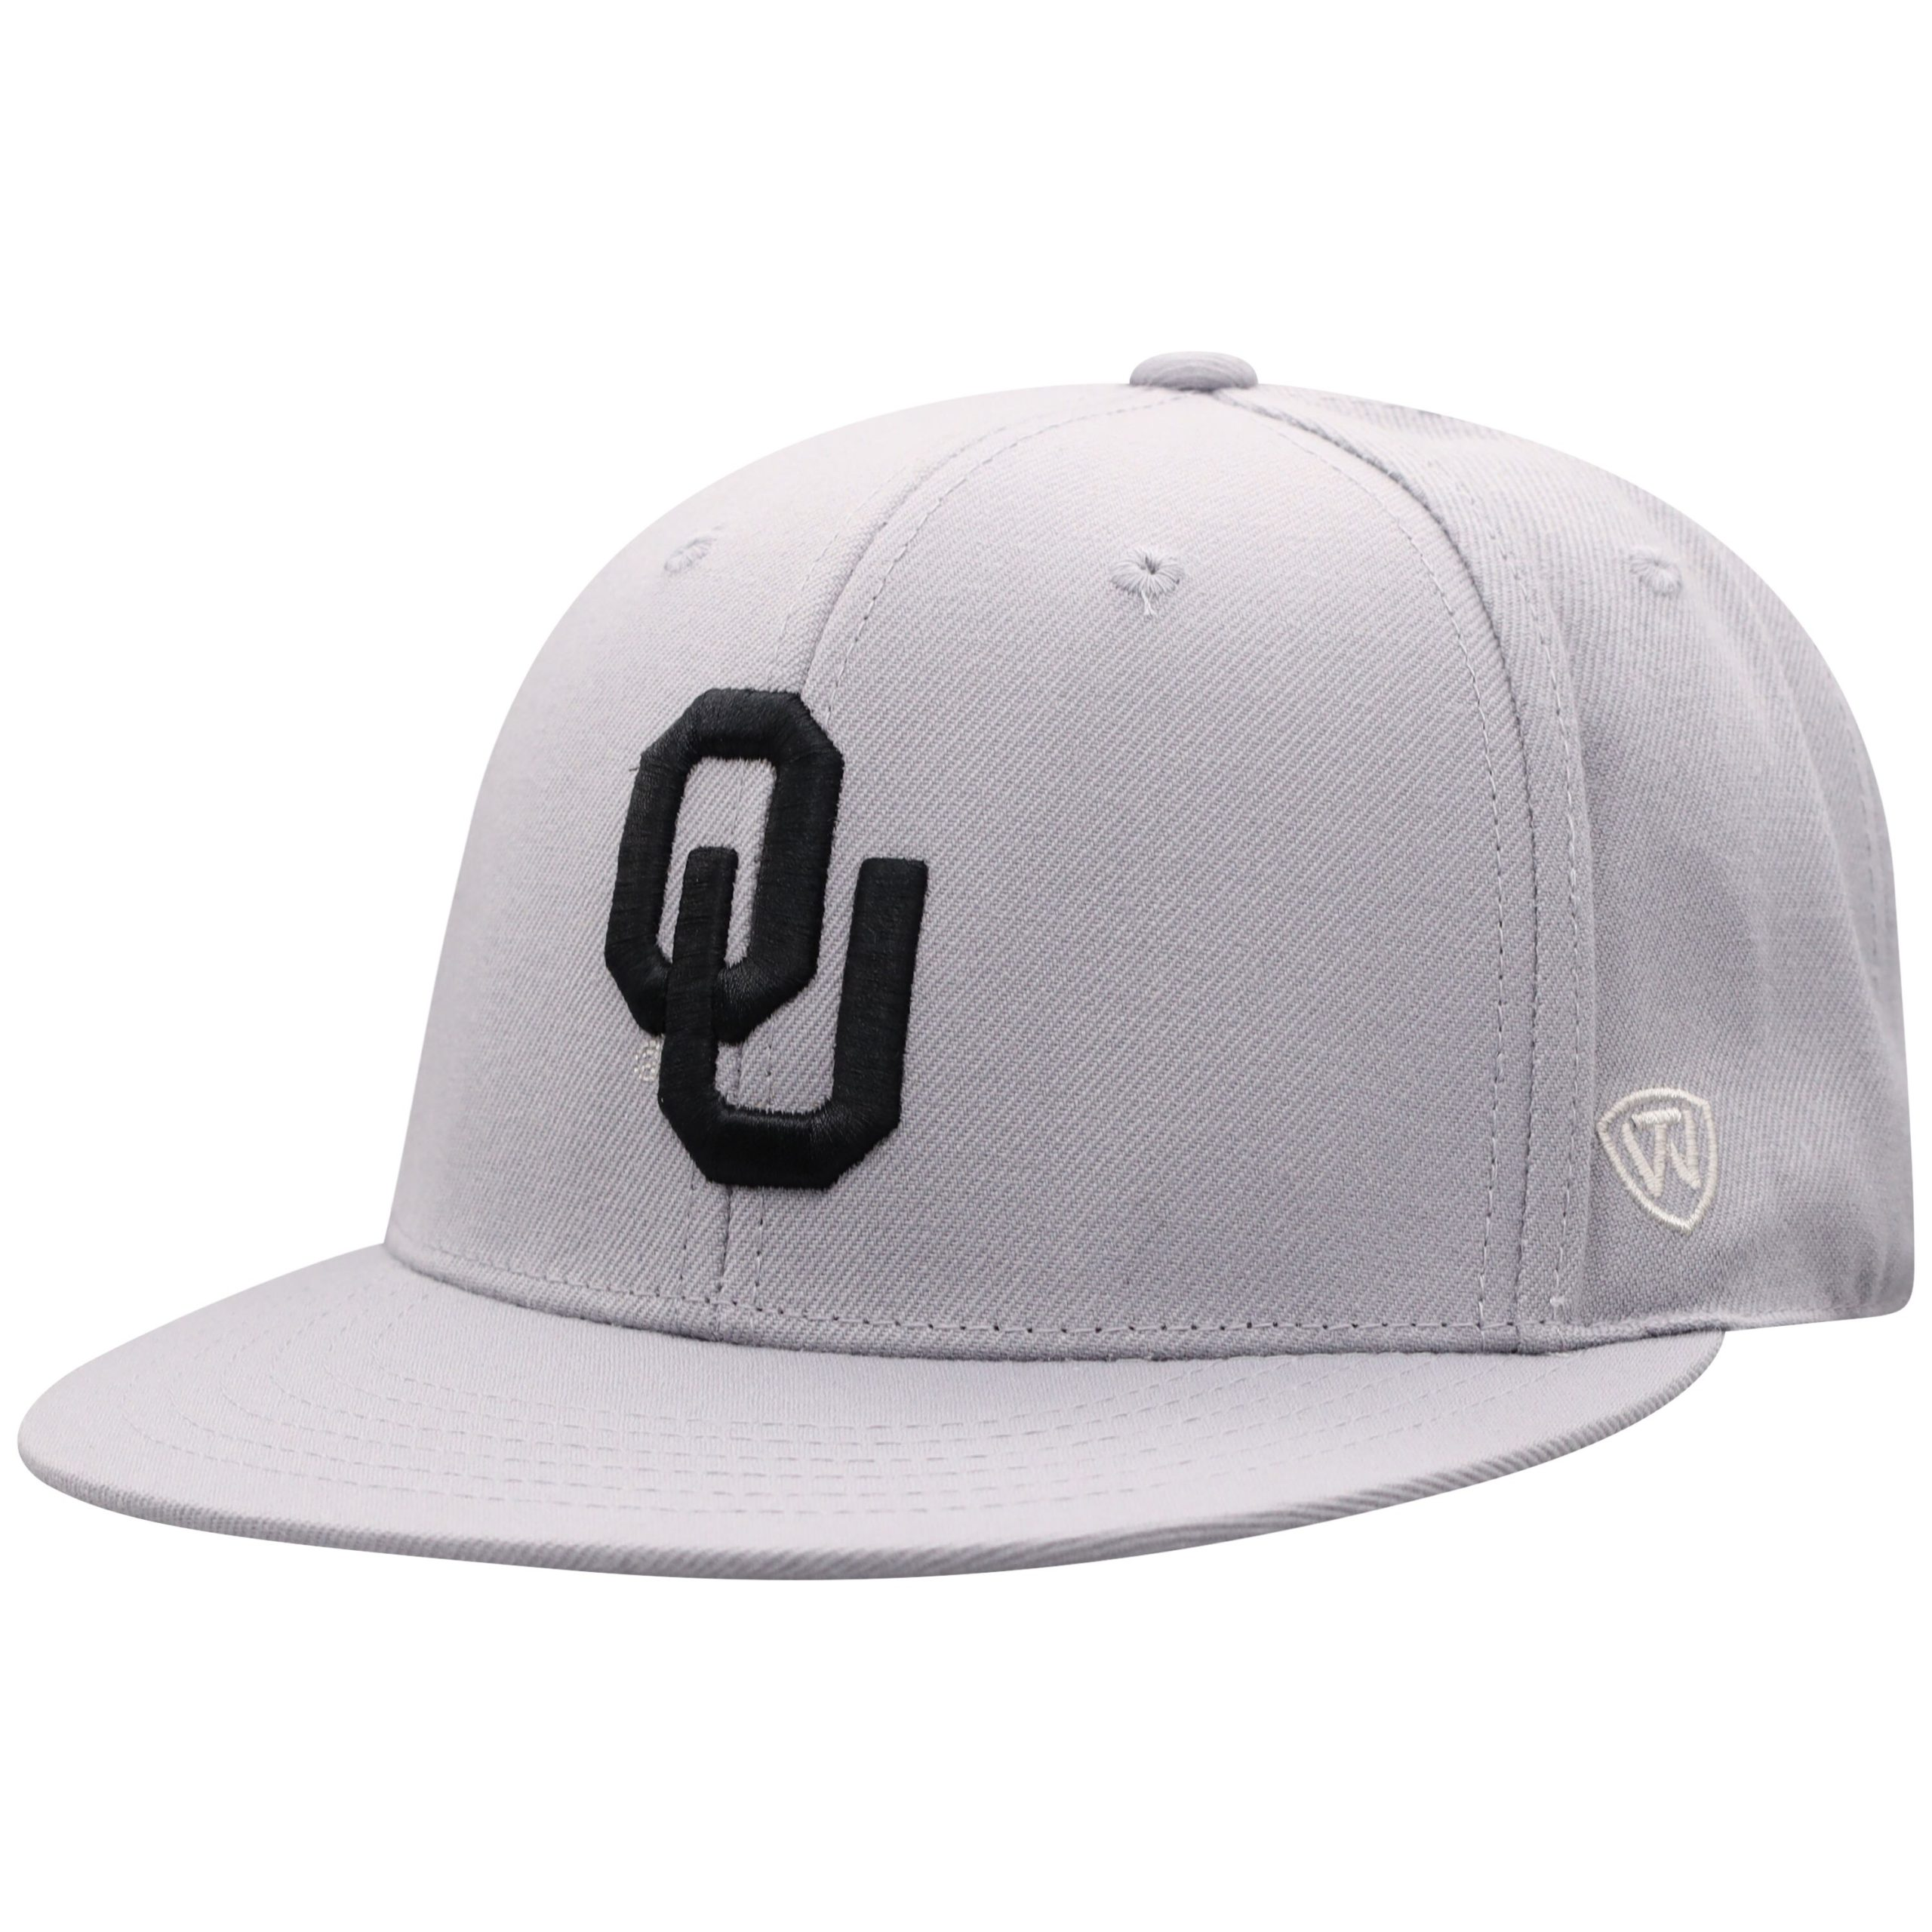 Men's Top of the World Gray Oklahoma Sooners Fitted Hat